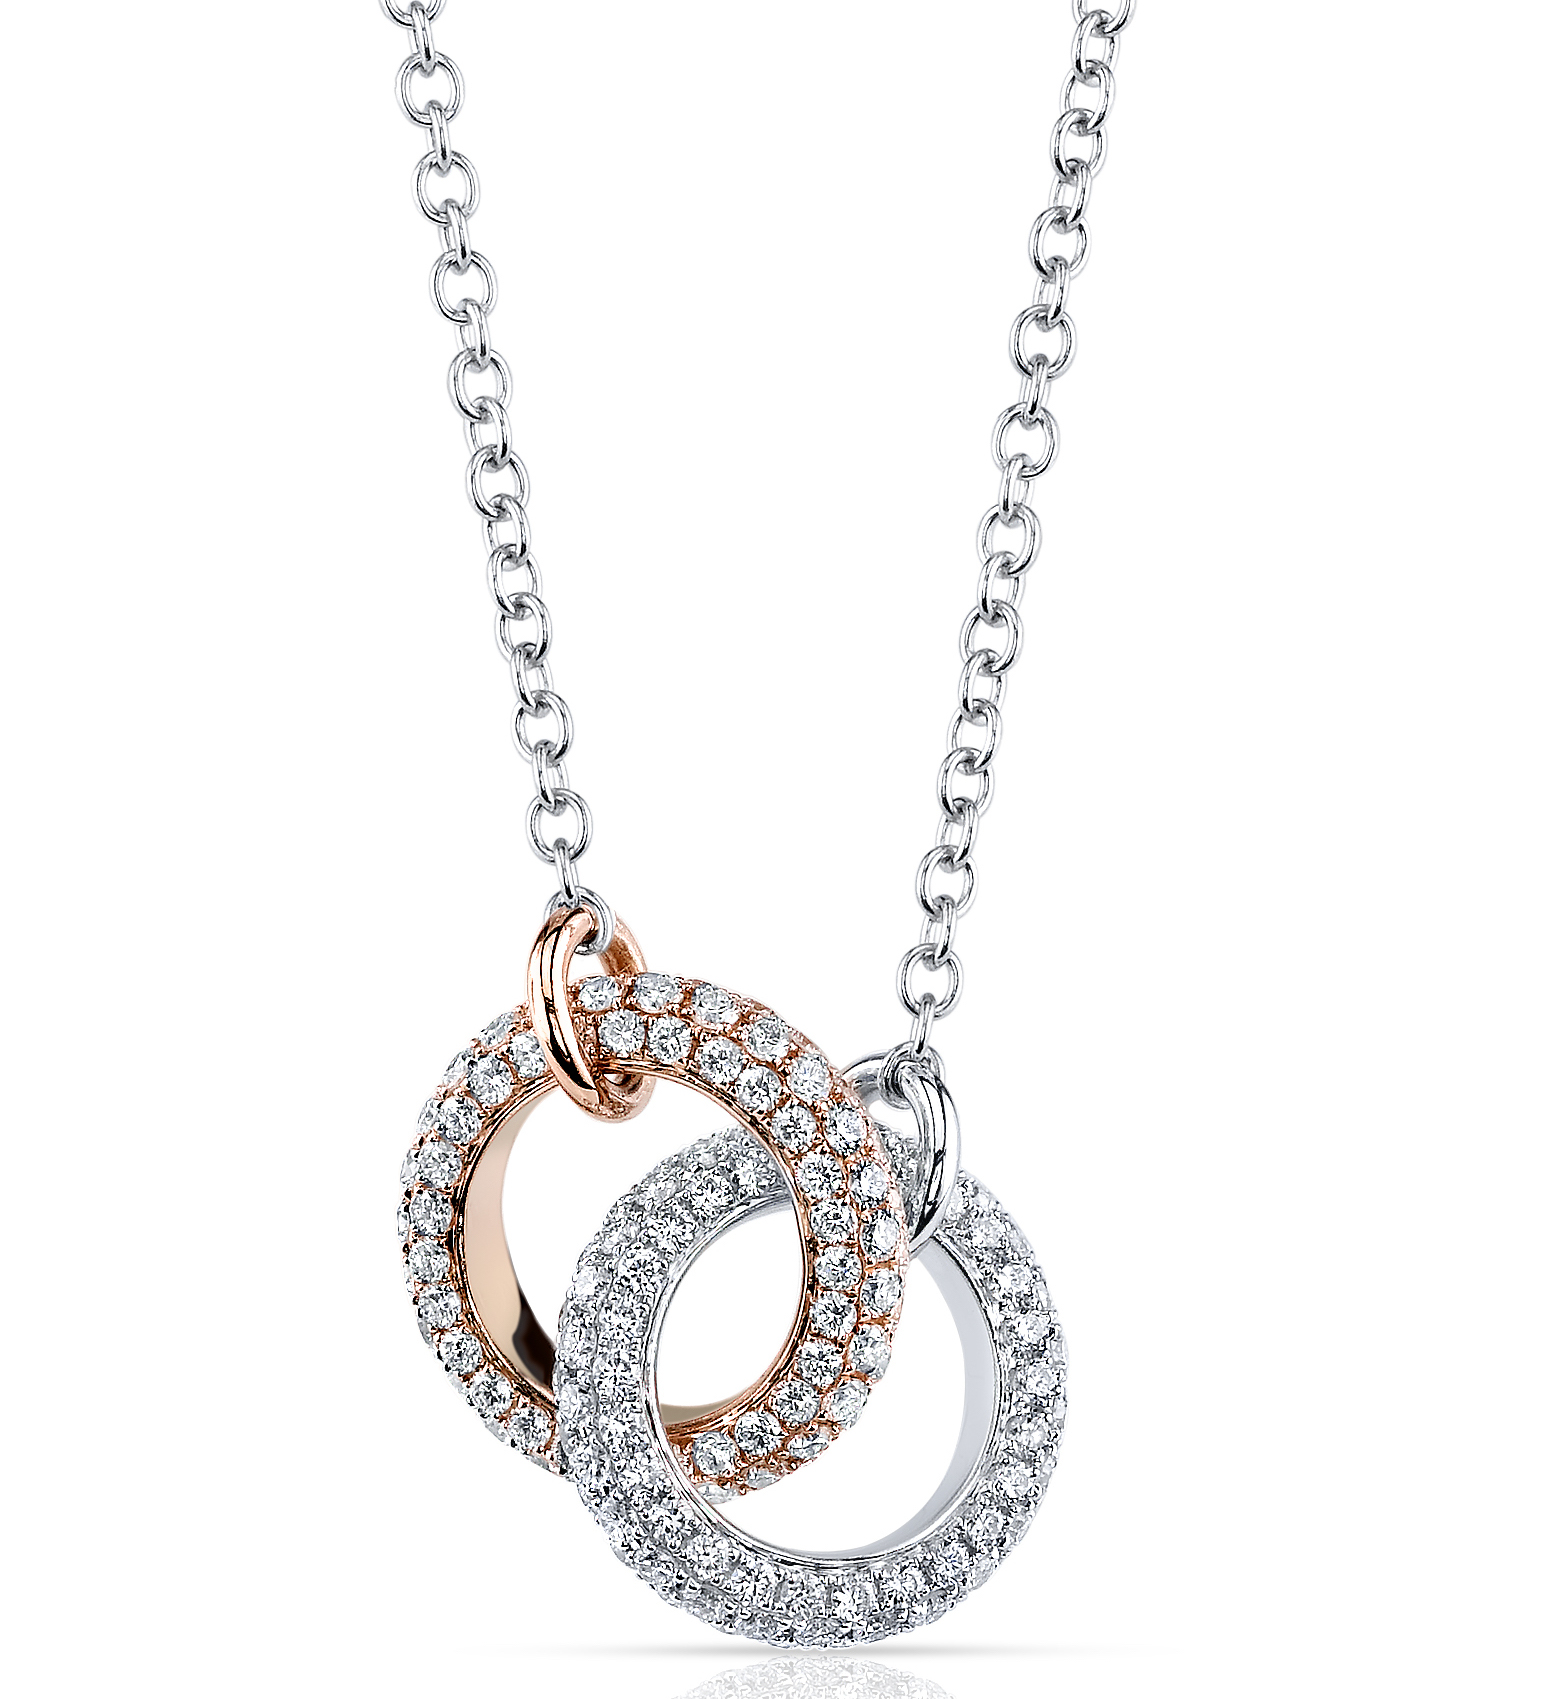 Elma Gil two-tone circle link necklace with diamonds | JCK On Your Market